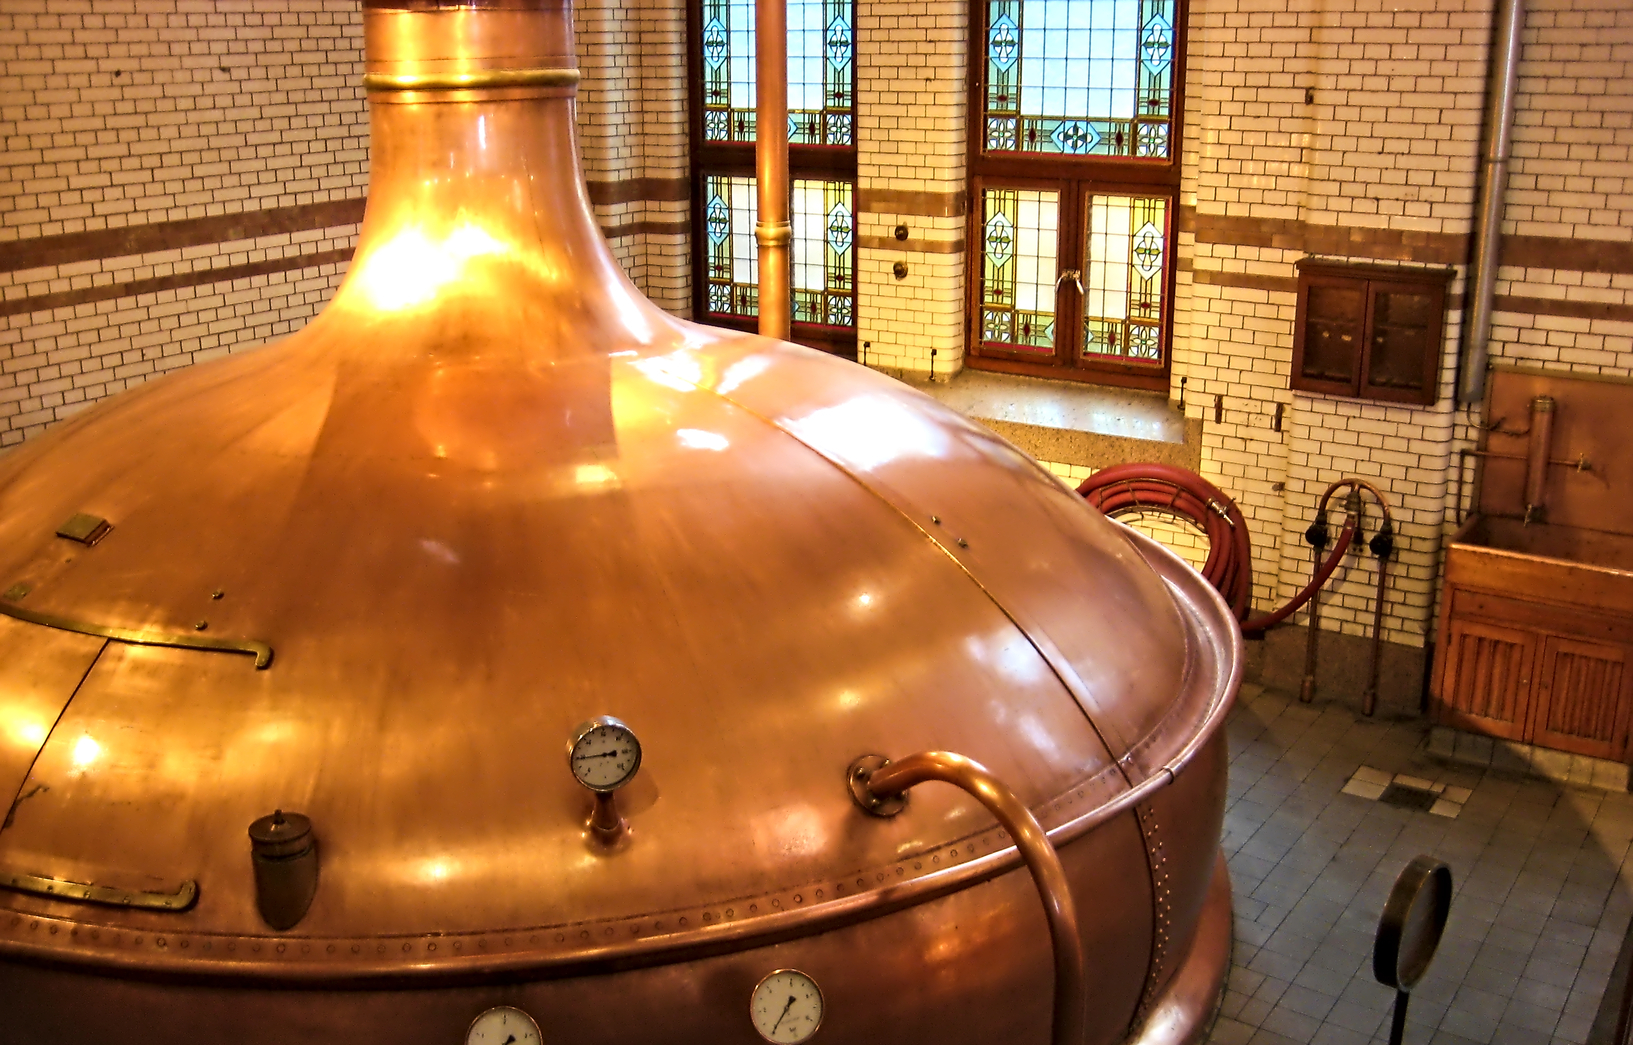 Make sure your New York Craft Brewery is protected with specialized Craft Brewer insurance from Smith Insurance.